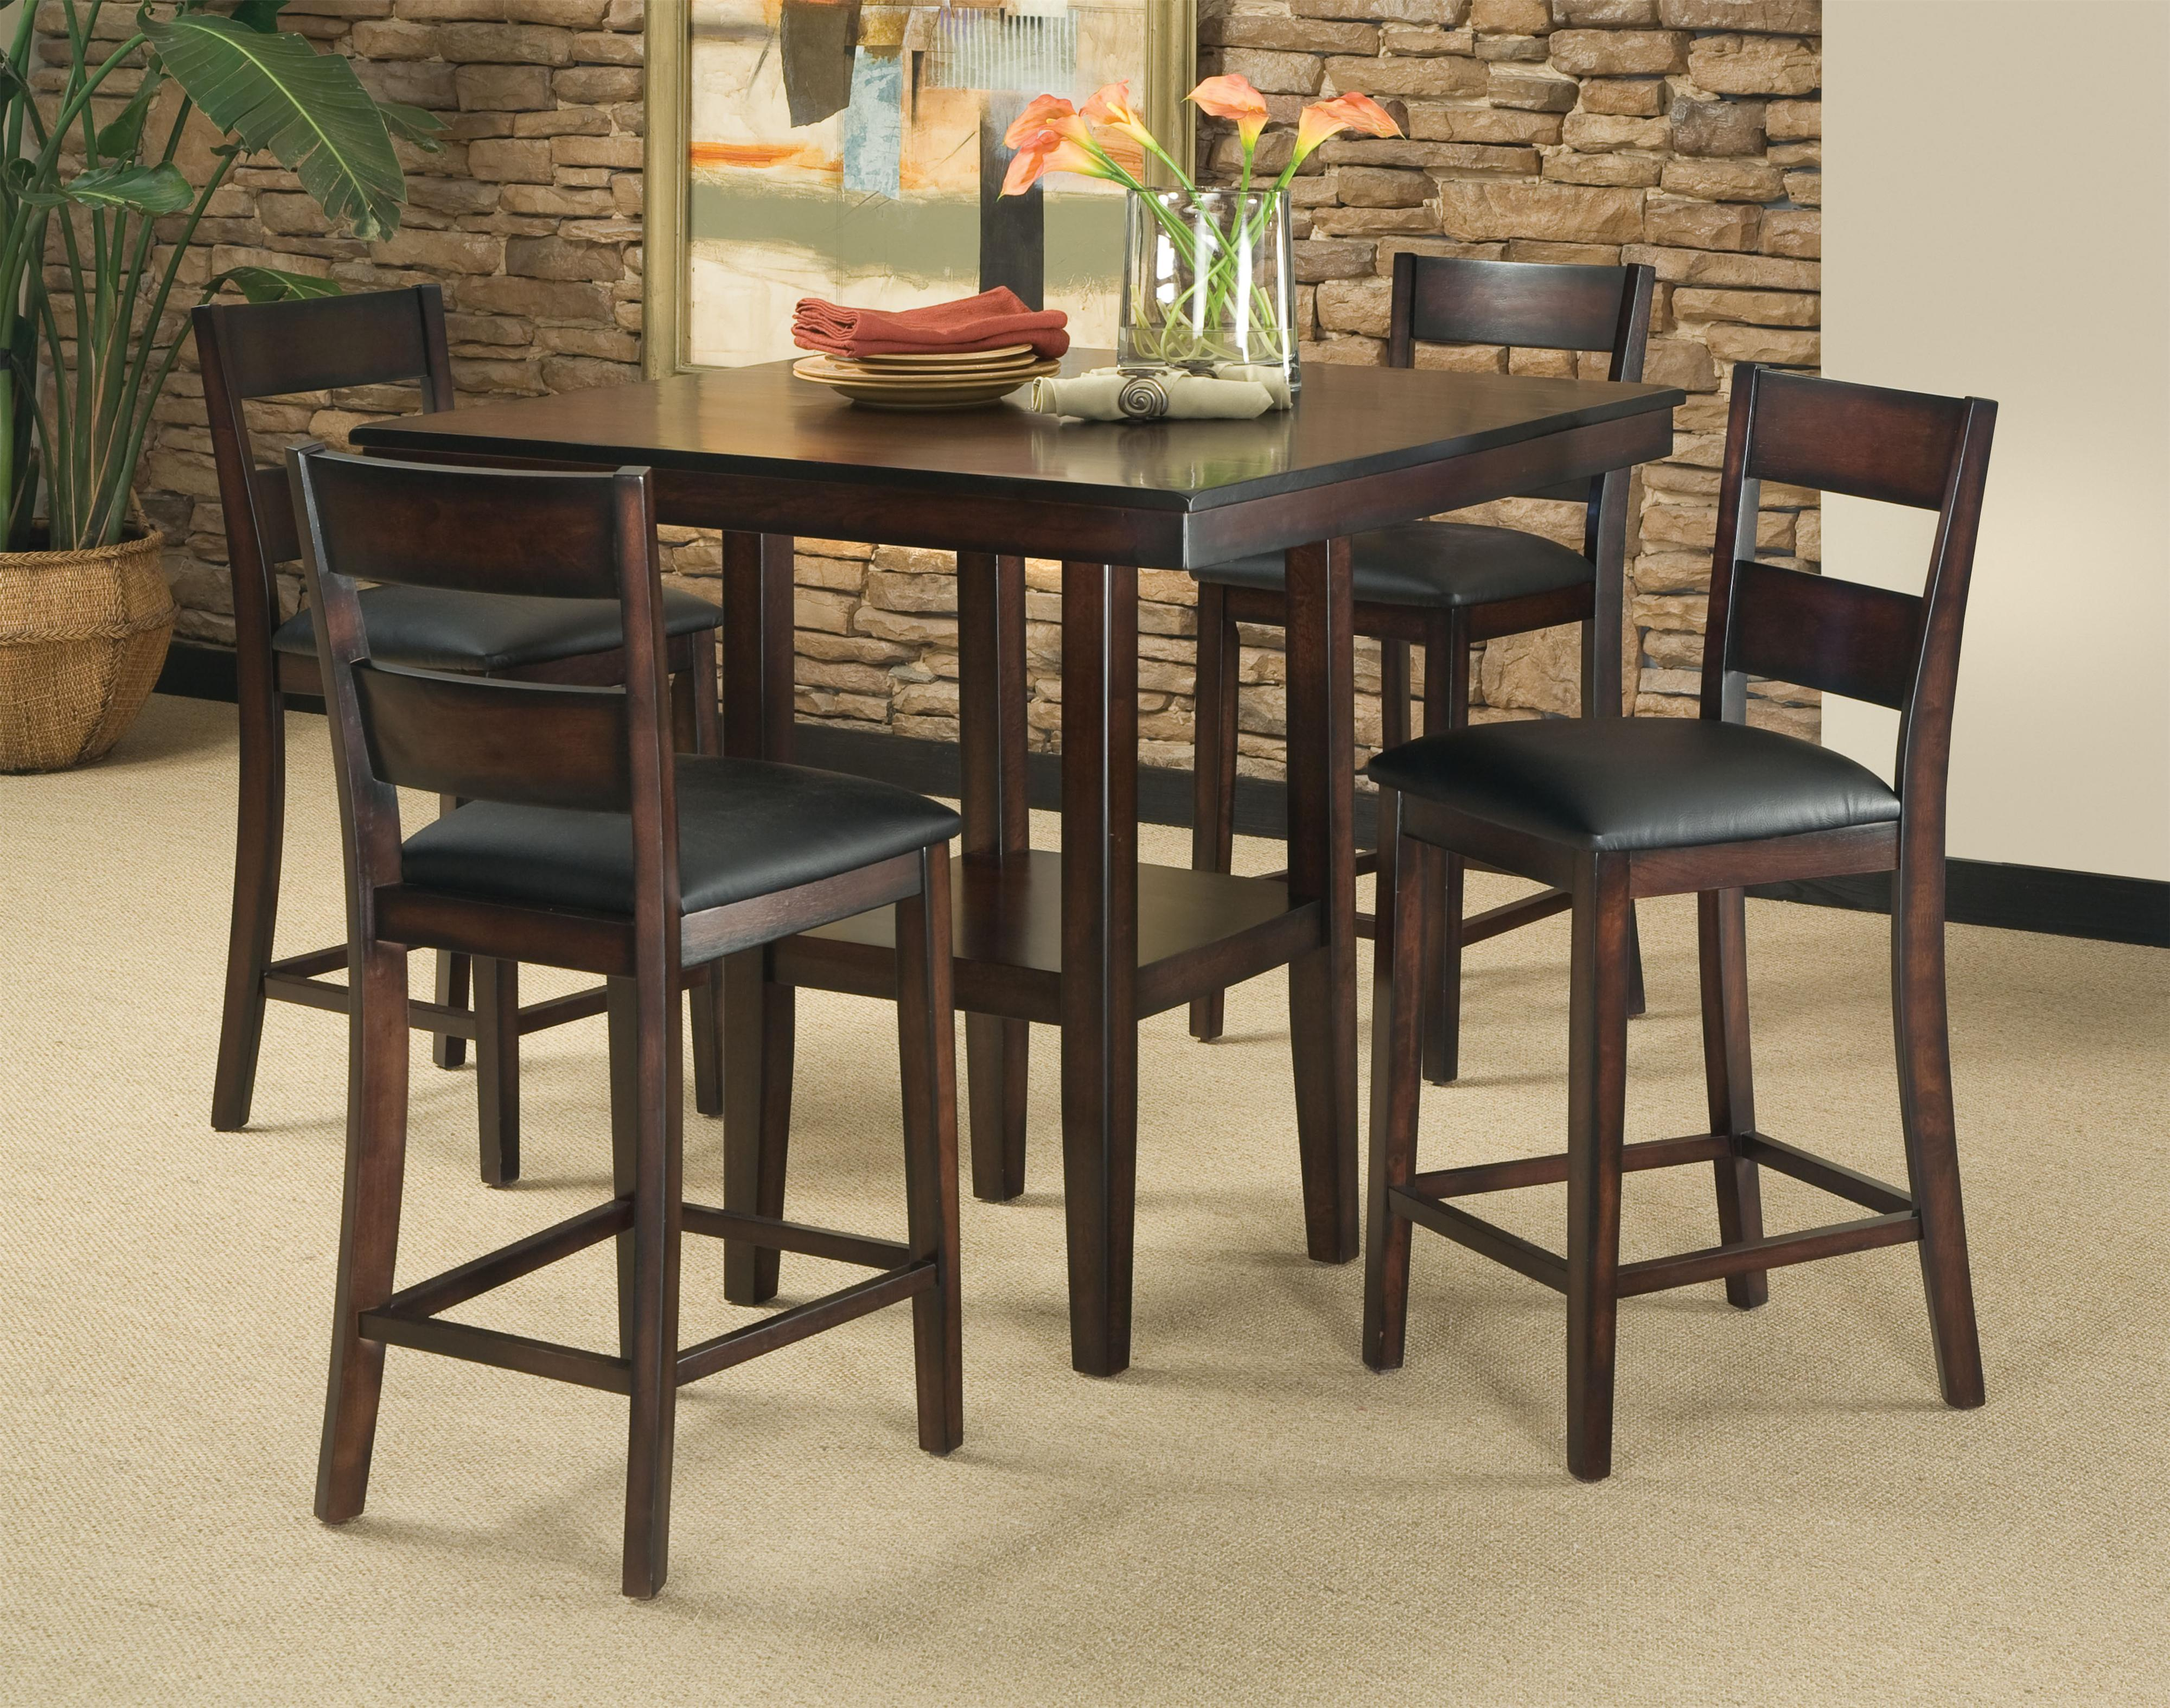 Standard Furniture Pendwood 5 Piece Contemporary Counter Height Table And  Stool Set | Standard Furniture | Pub Table And Stool Sets Birmingham,  Huntsville, ...